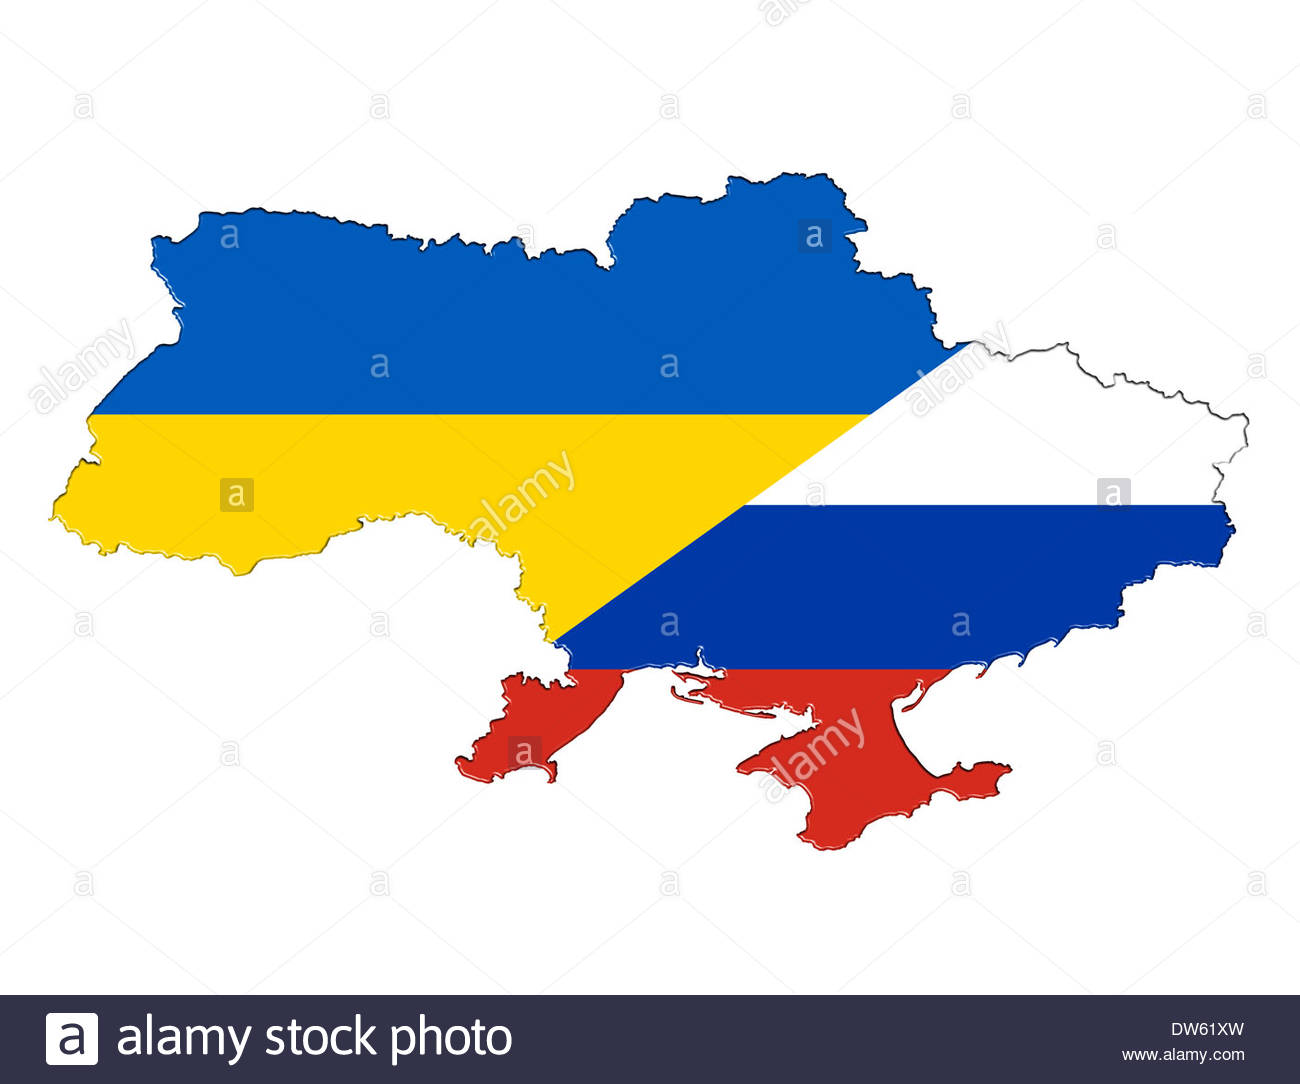 Map flag banner of the Ukraine separate in the Russian and Ukrainian part - Stock Image